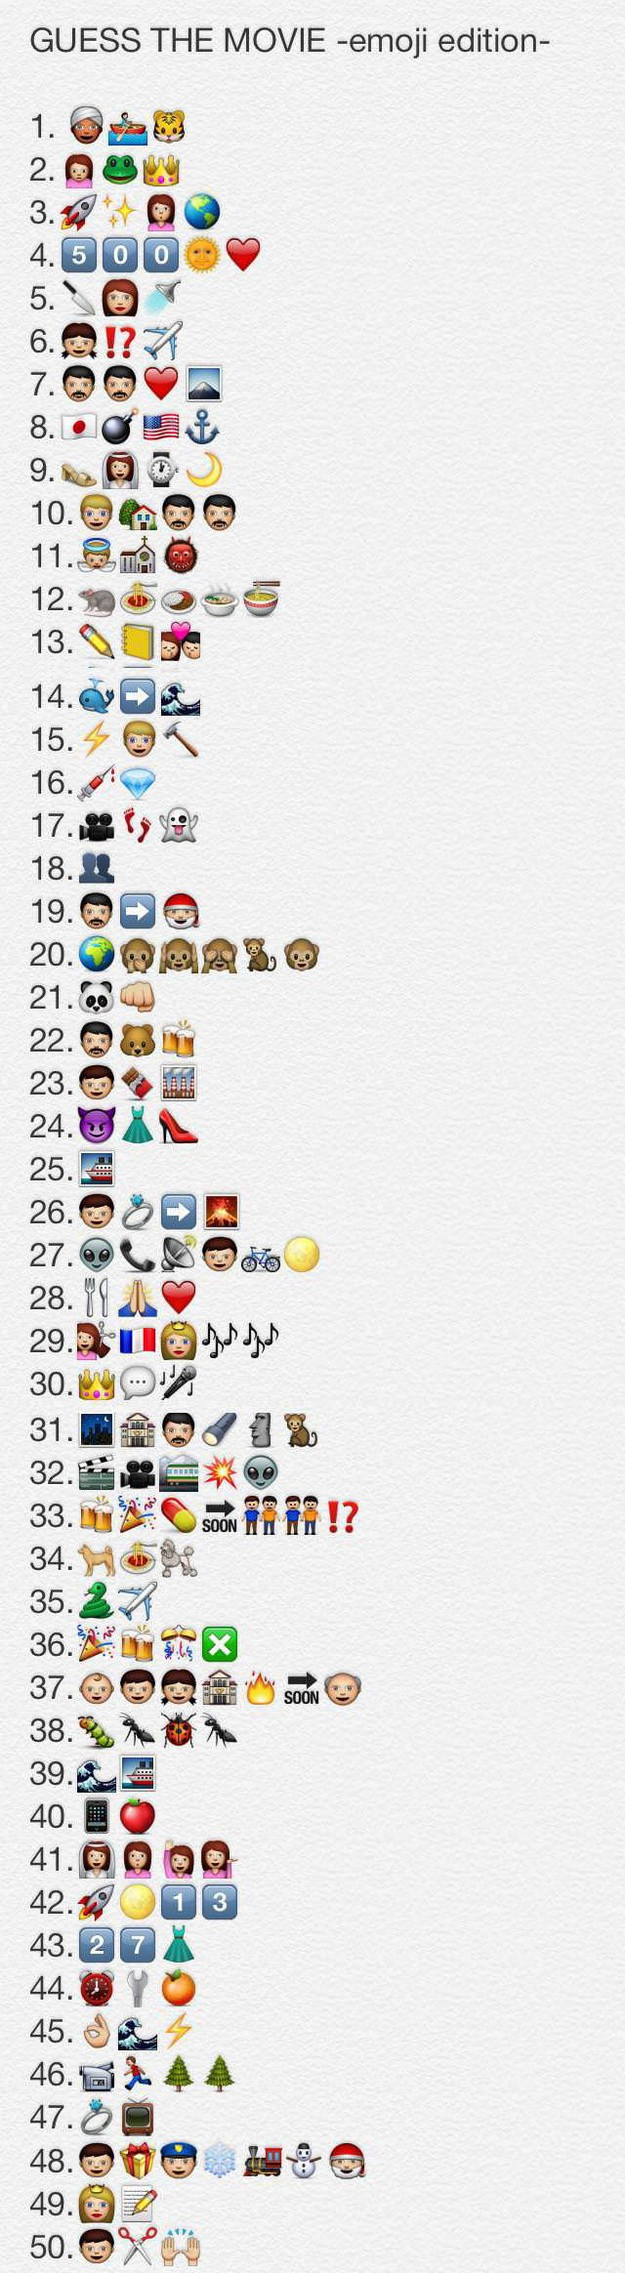 Guess the movie emoji